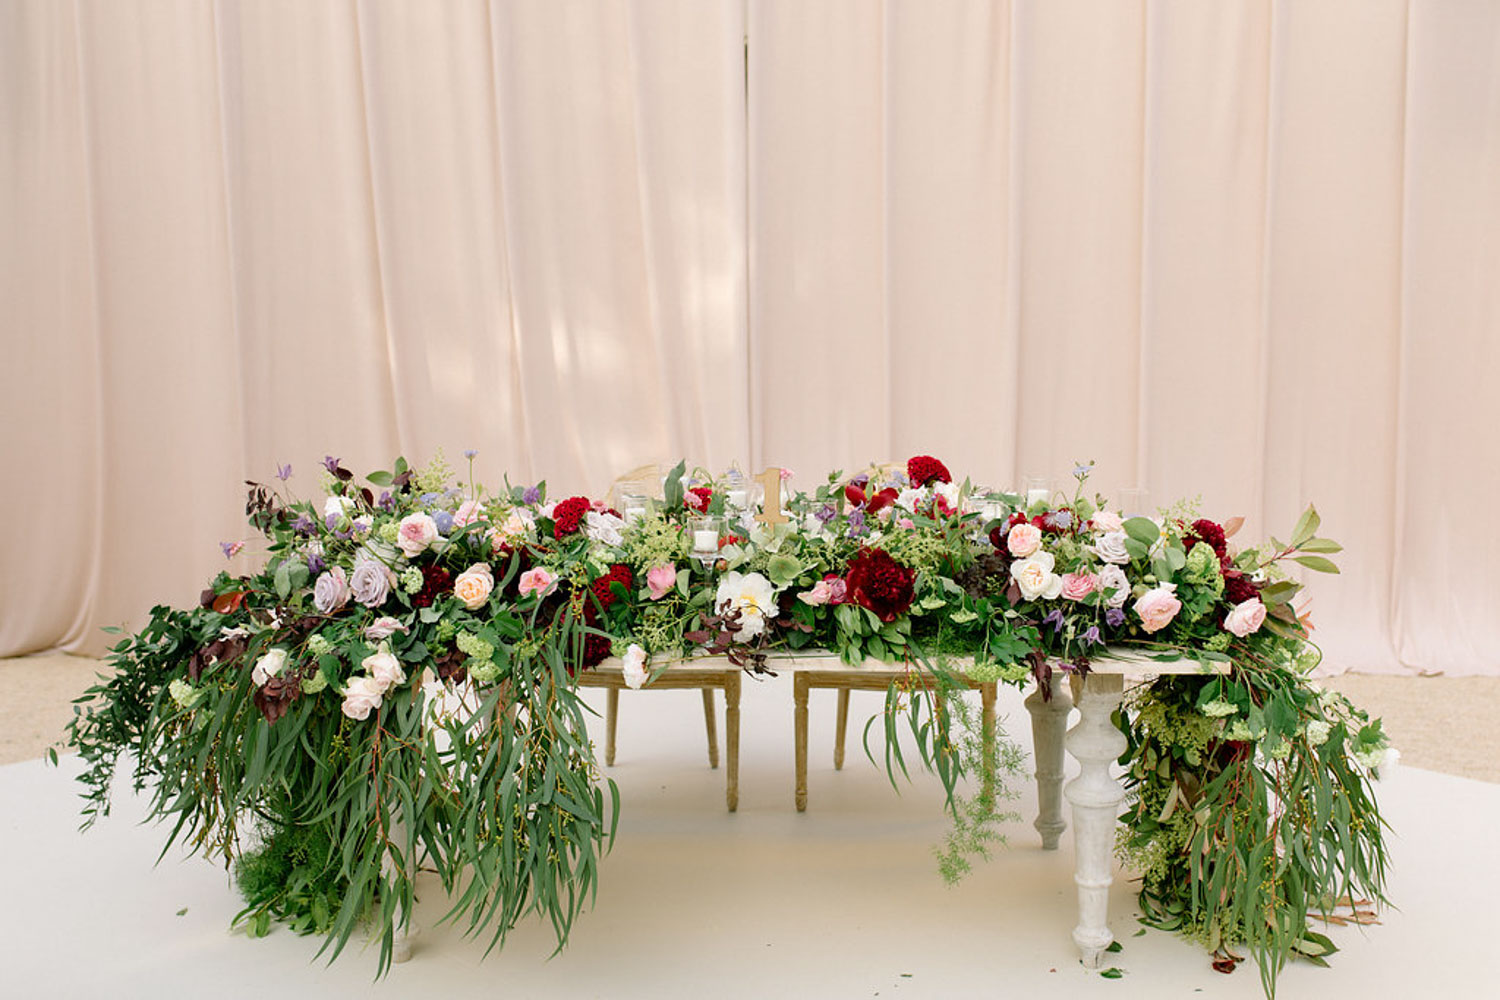 Top table wood table with bungundy and green garland Barcelona